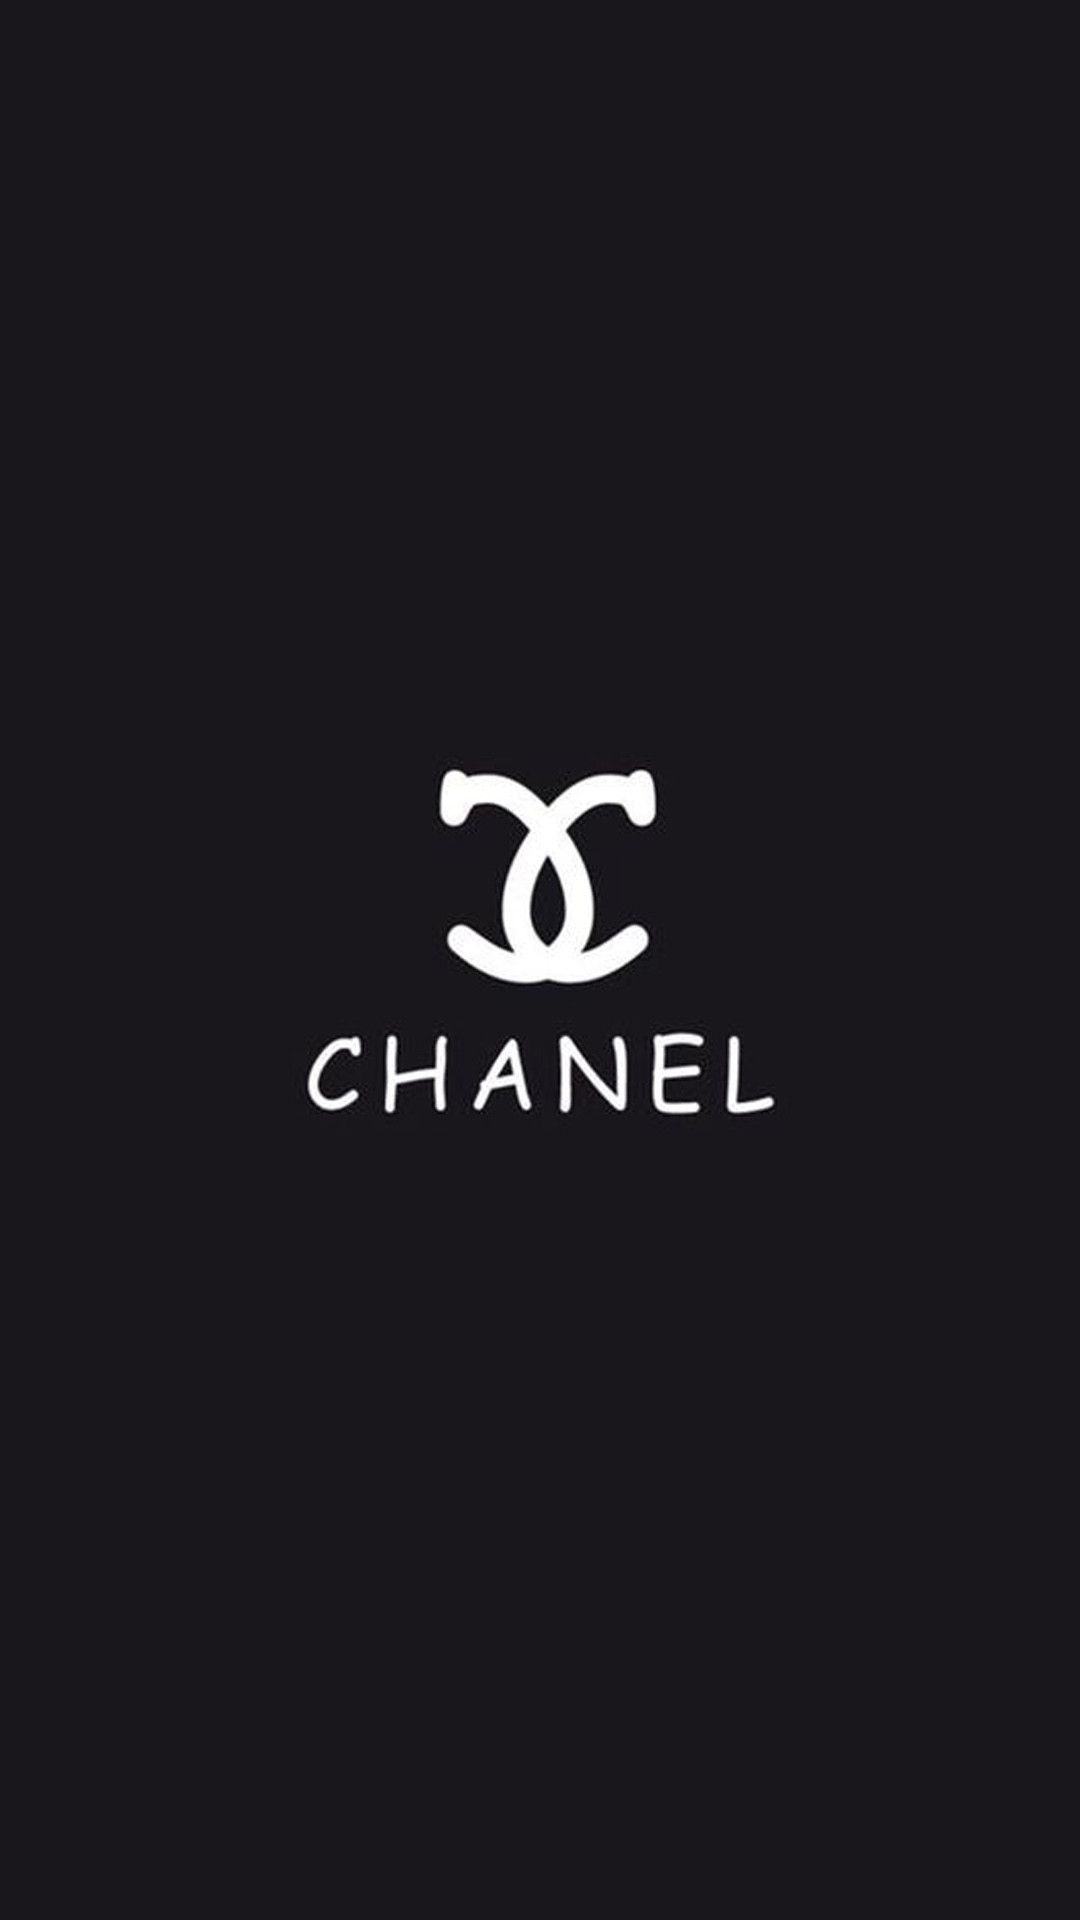 Chanel Wallpaper For Iphone | The Art